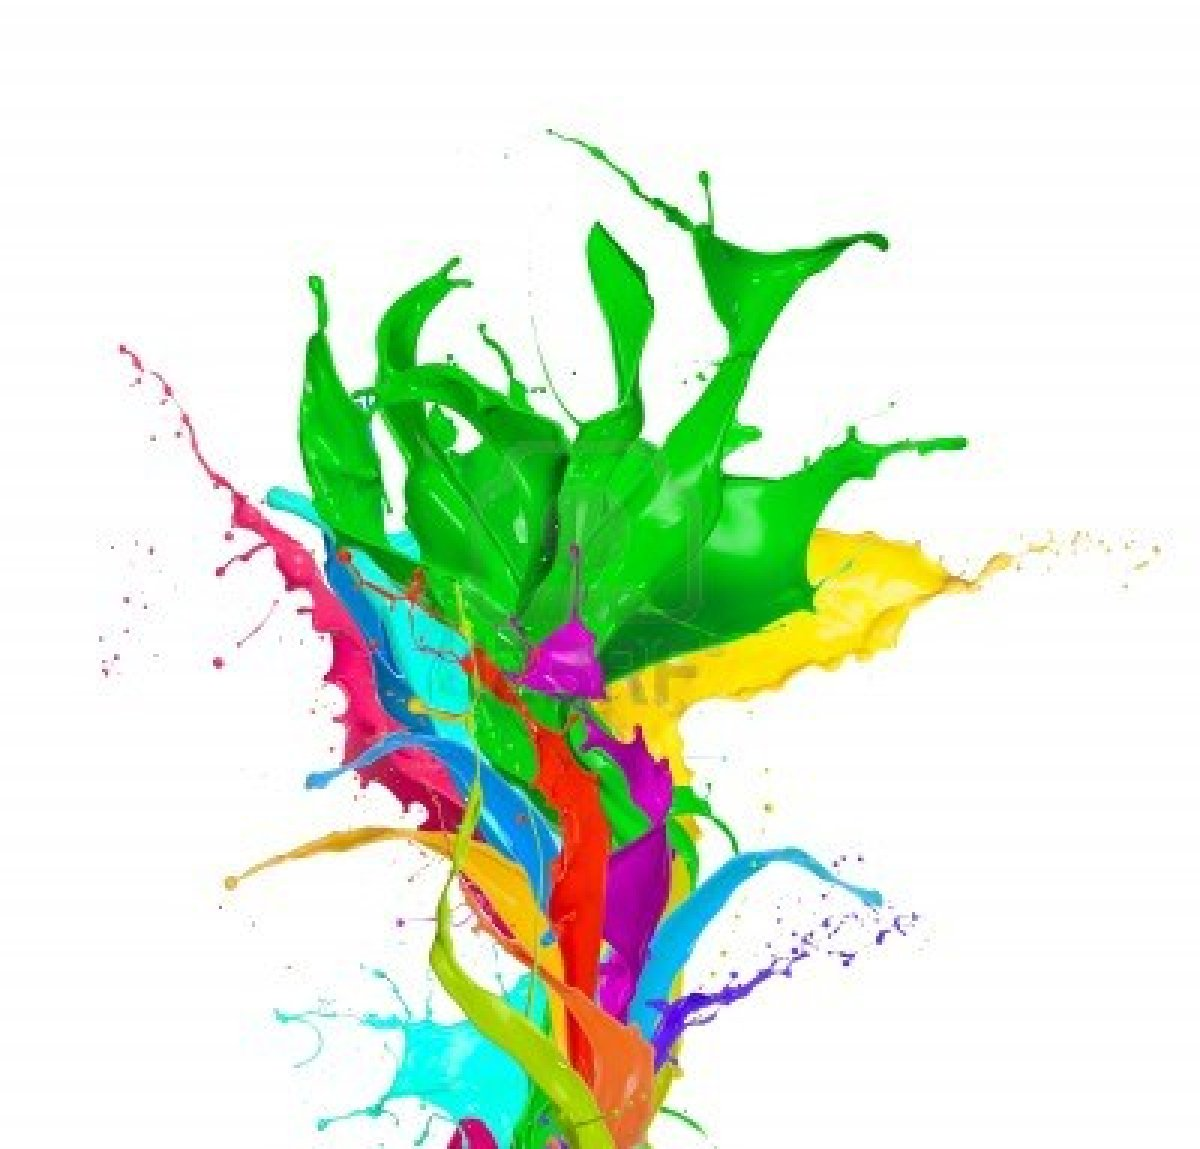 Painting clipart splashed #9 - Painting PNG HD